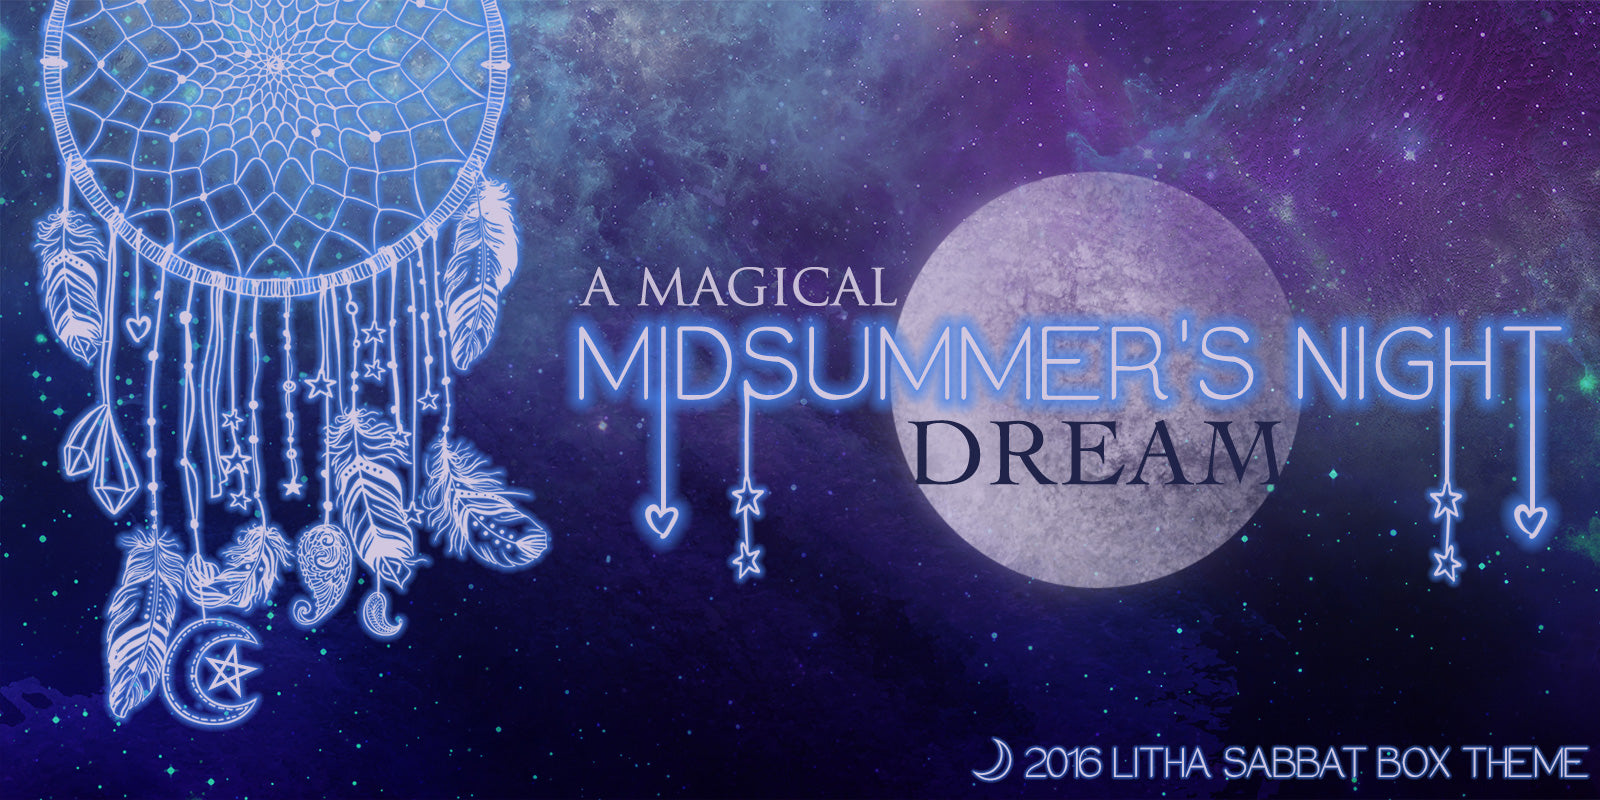 Litha - Midsummer Sabbat Box Theme - A Magical Midsummer's Night Dream